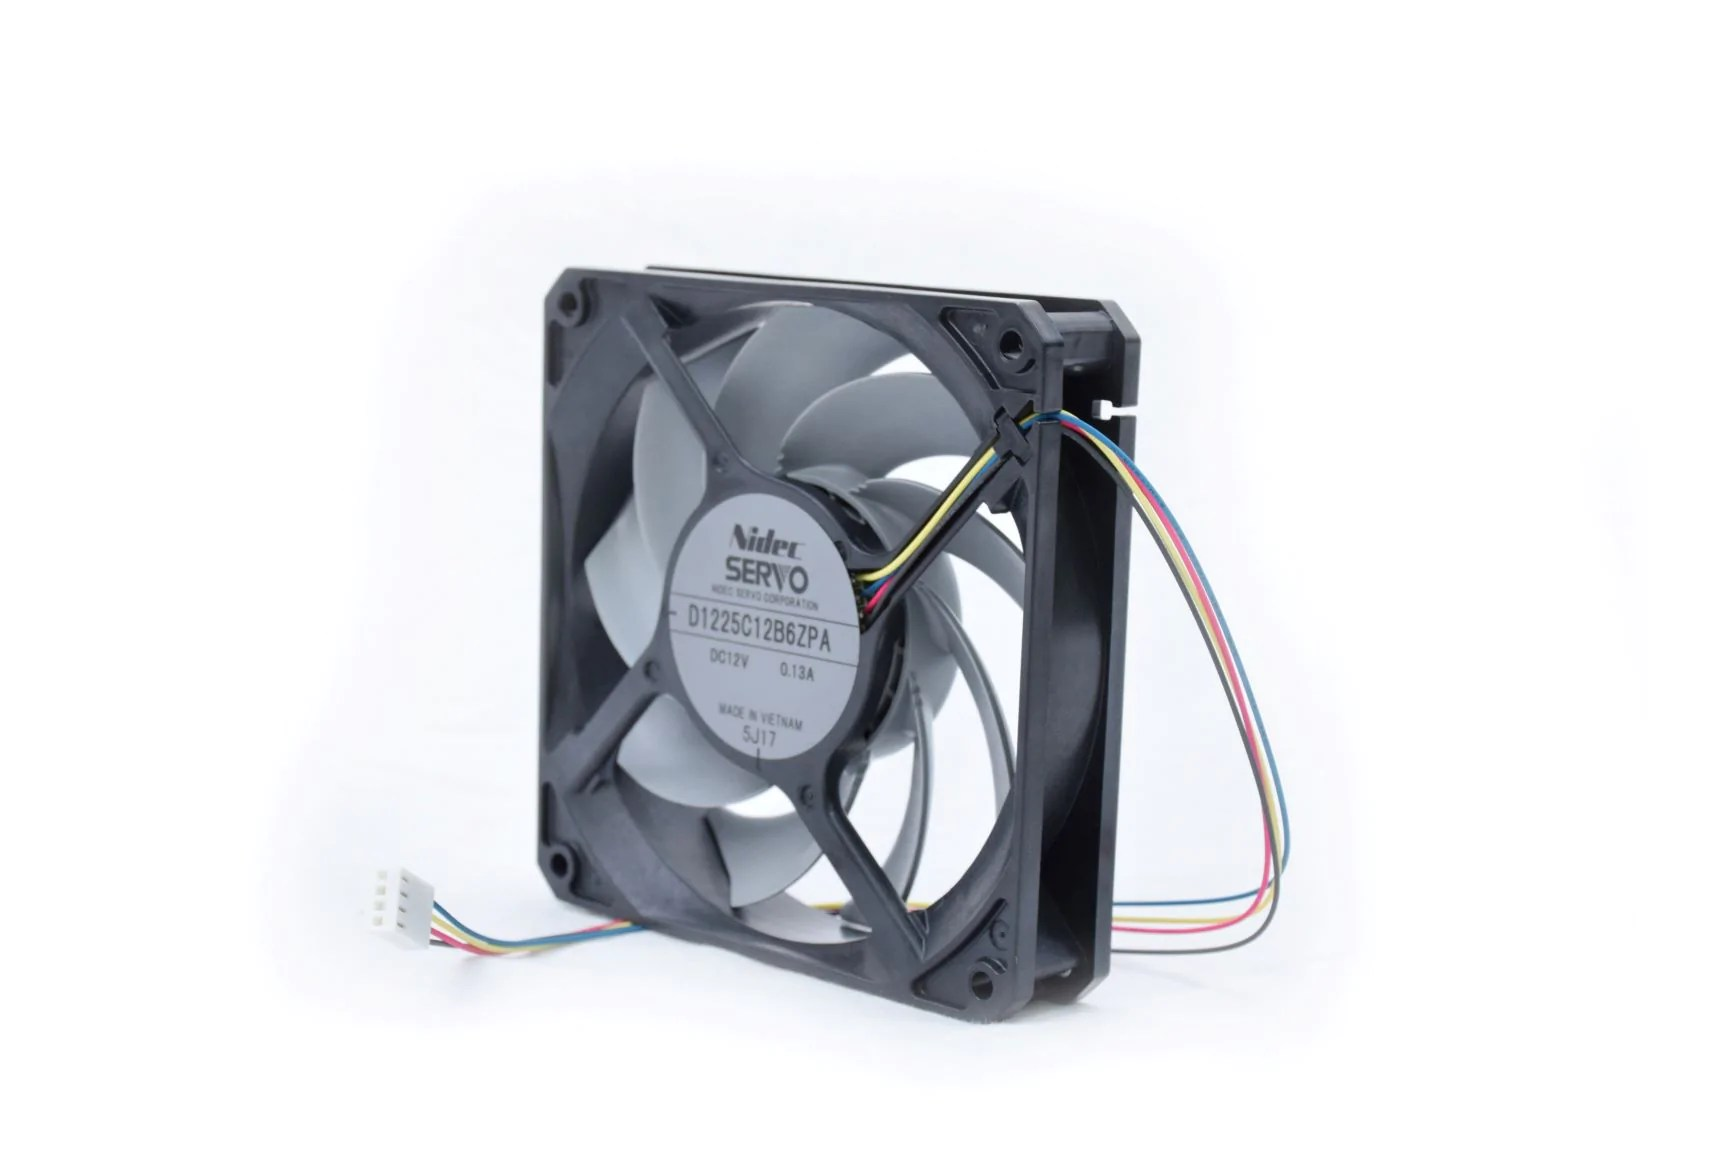 small resolution of gentletyphoon 120x120x25mm silent case fan series d1225c12b